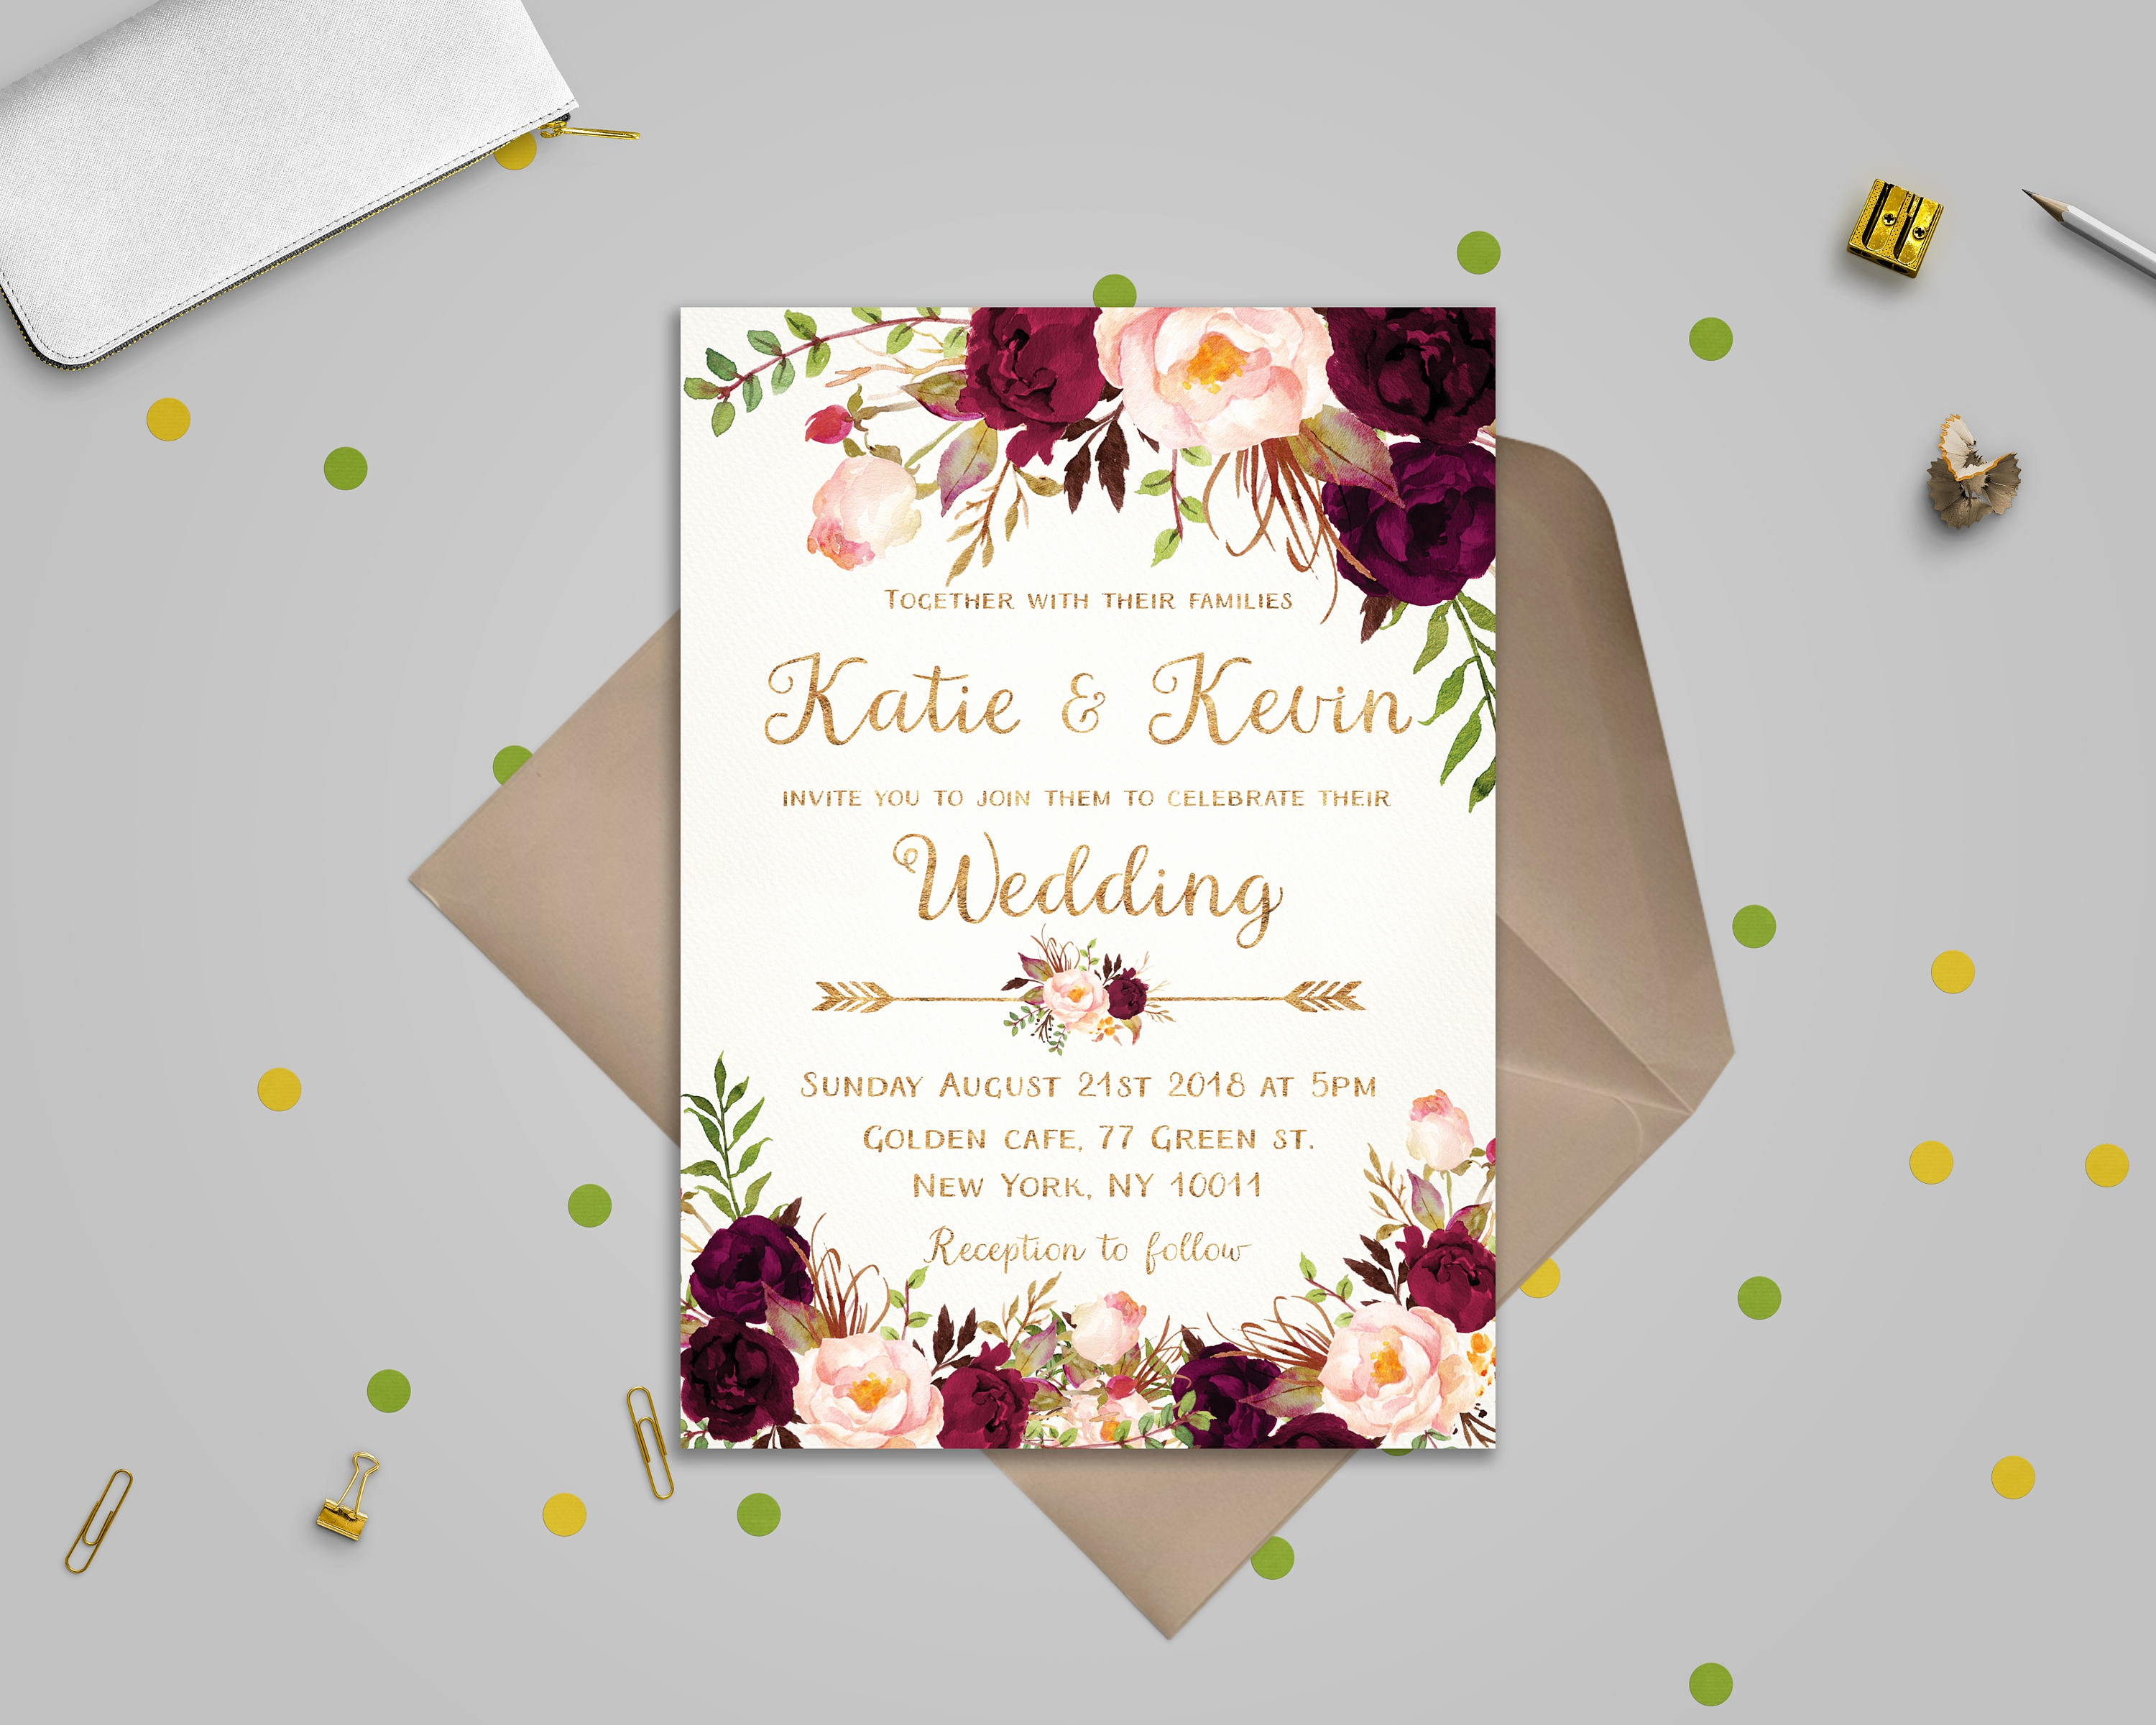 Best Wedding Invitation Designs Beautiful Floral Wedding Invitation Template Wedding Invitation